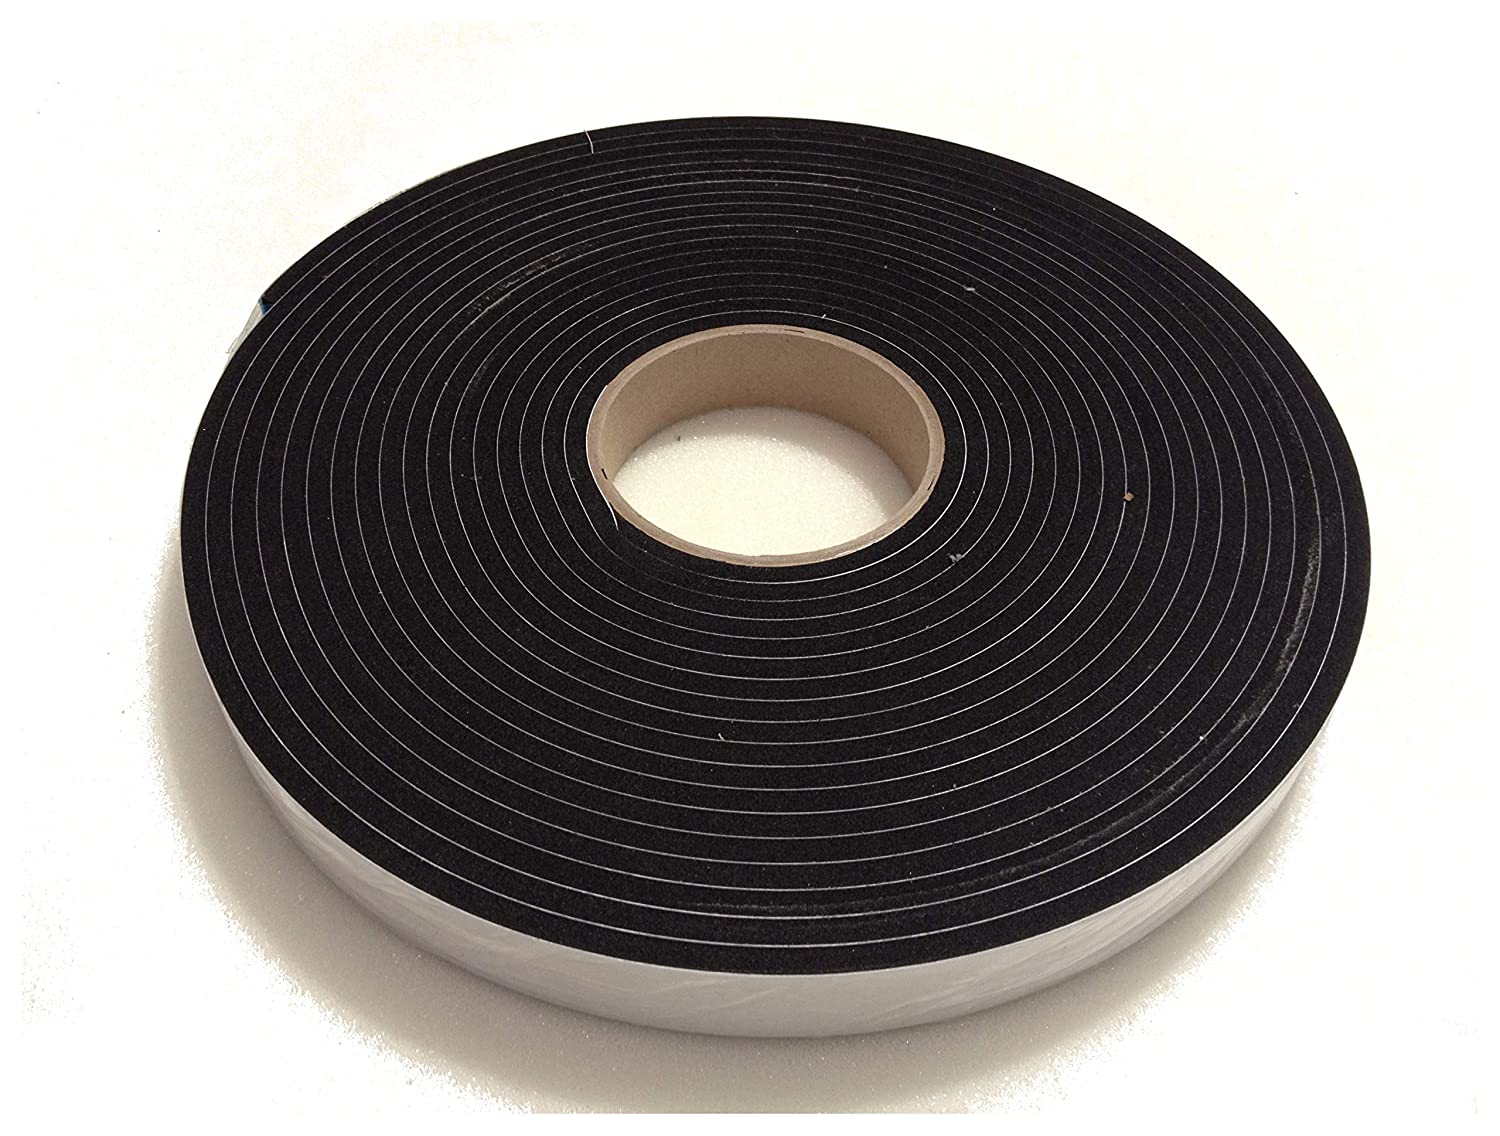 Advanced Acoustics lowenergysupermarket sellador resistente cinta  –   25  mm de 5  mm de espesor por 10  m largo rollo